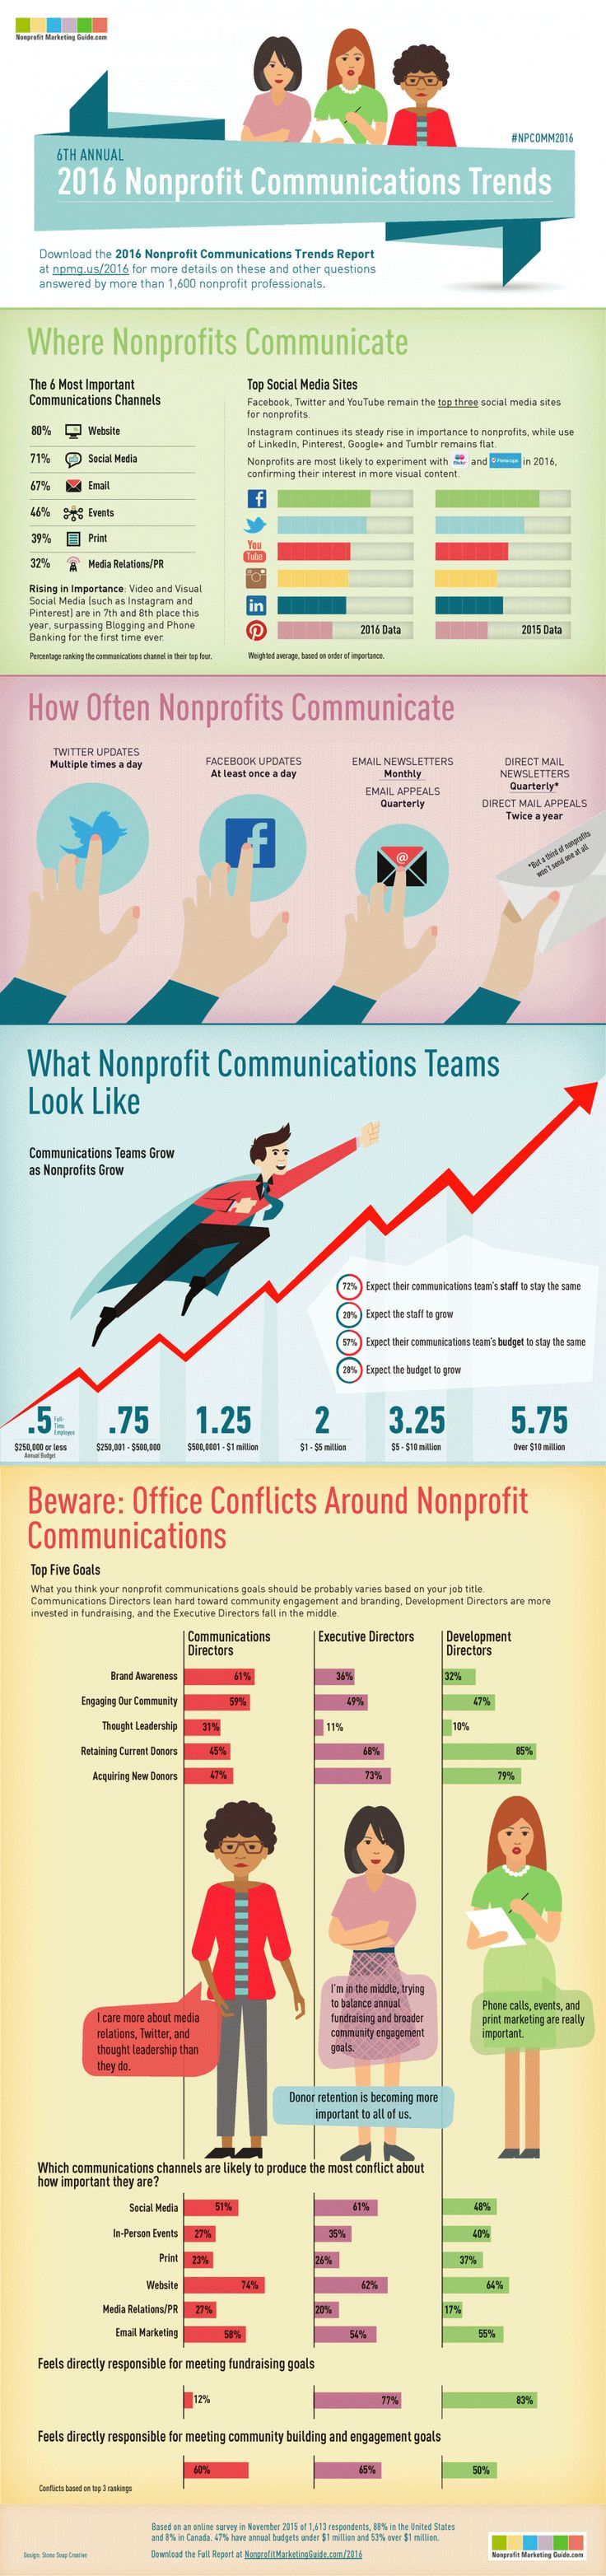 How does your nonprofit's marketing stacks up against your peers? Find out in the Nonprofit Marketing Guides' 2016 Nonprofit Communications Trends Report.